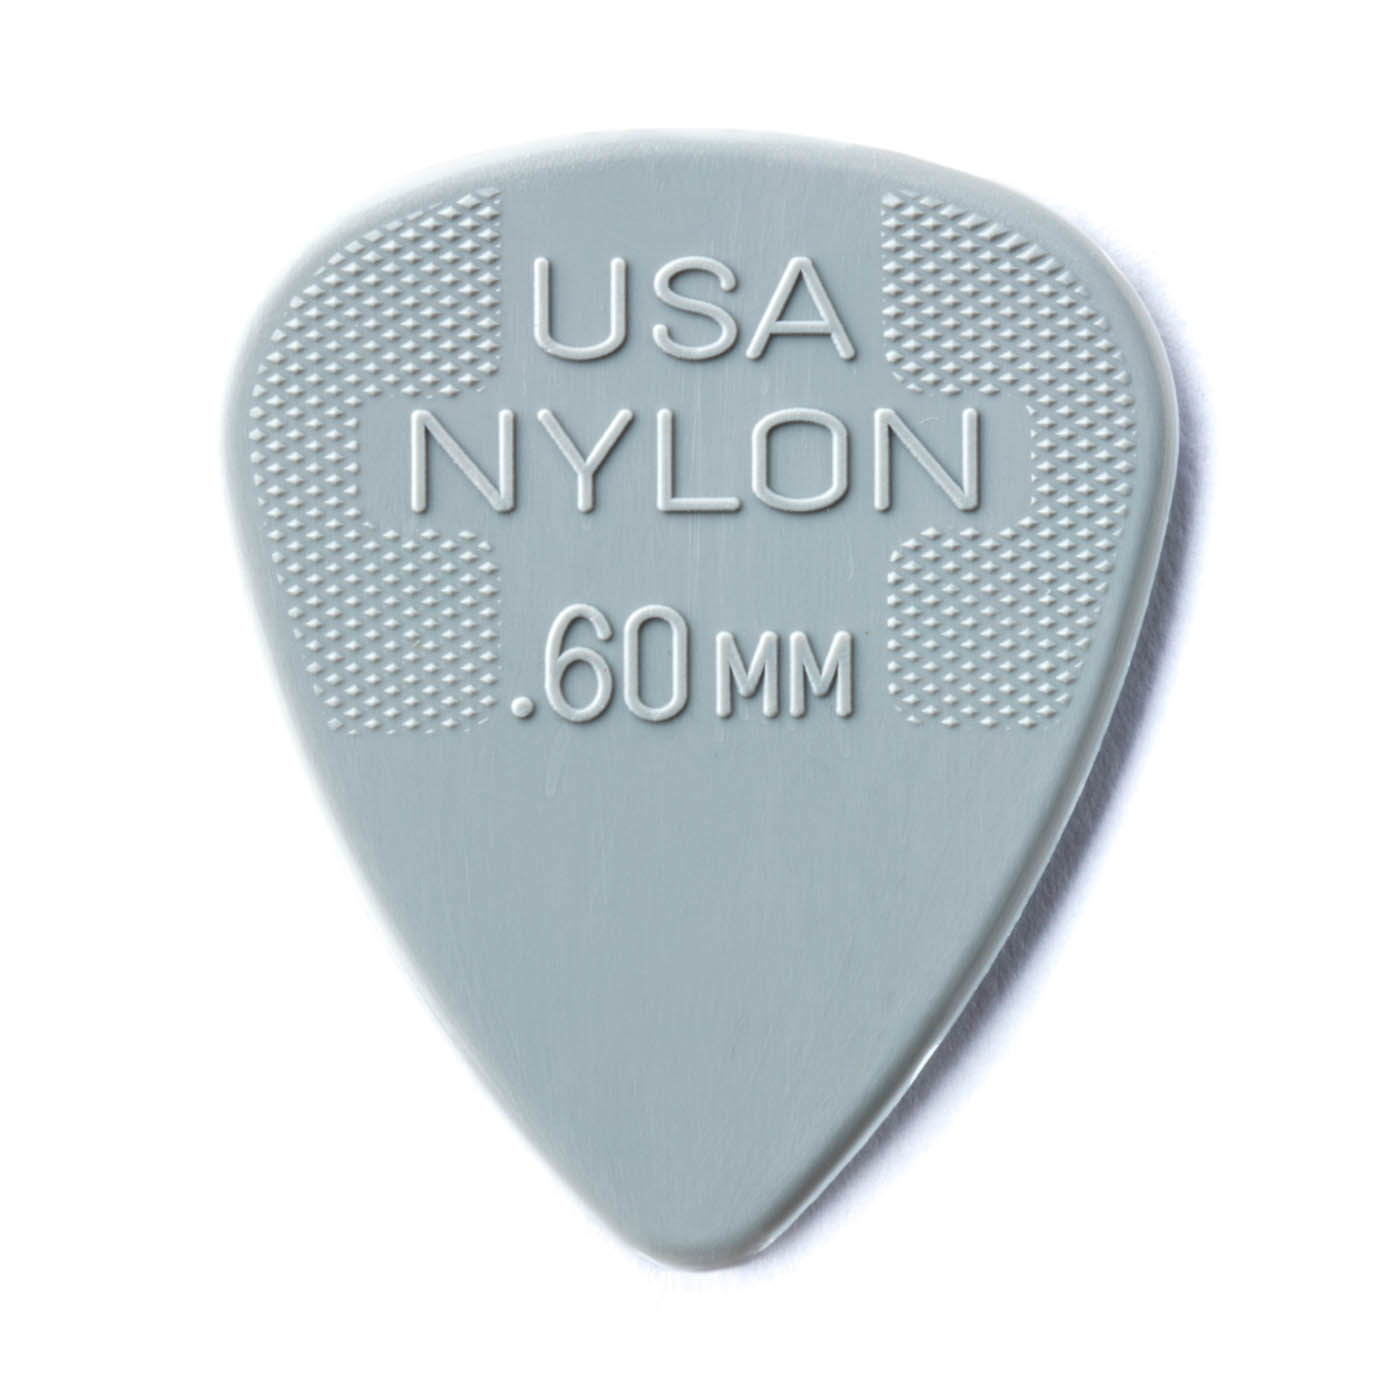 DUNLOP Médiators Nylon Standard